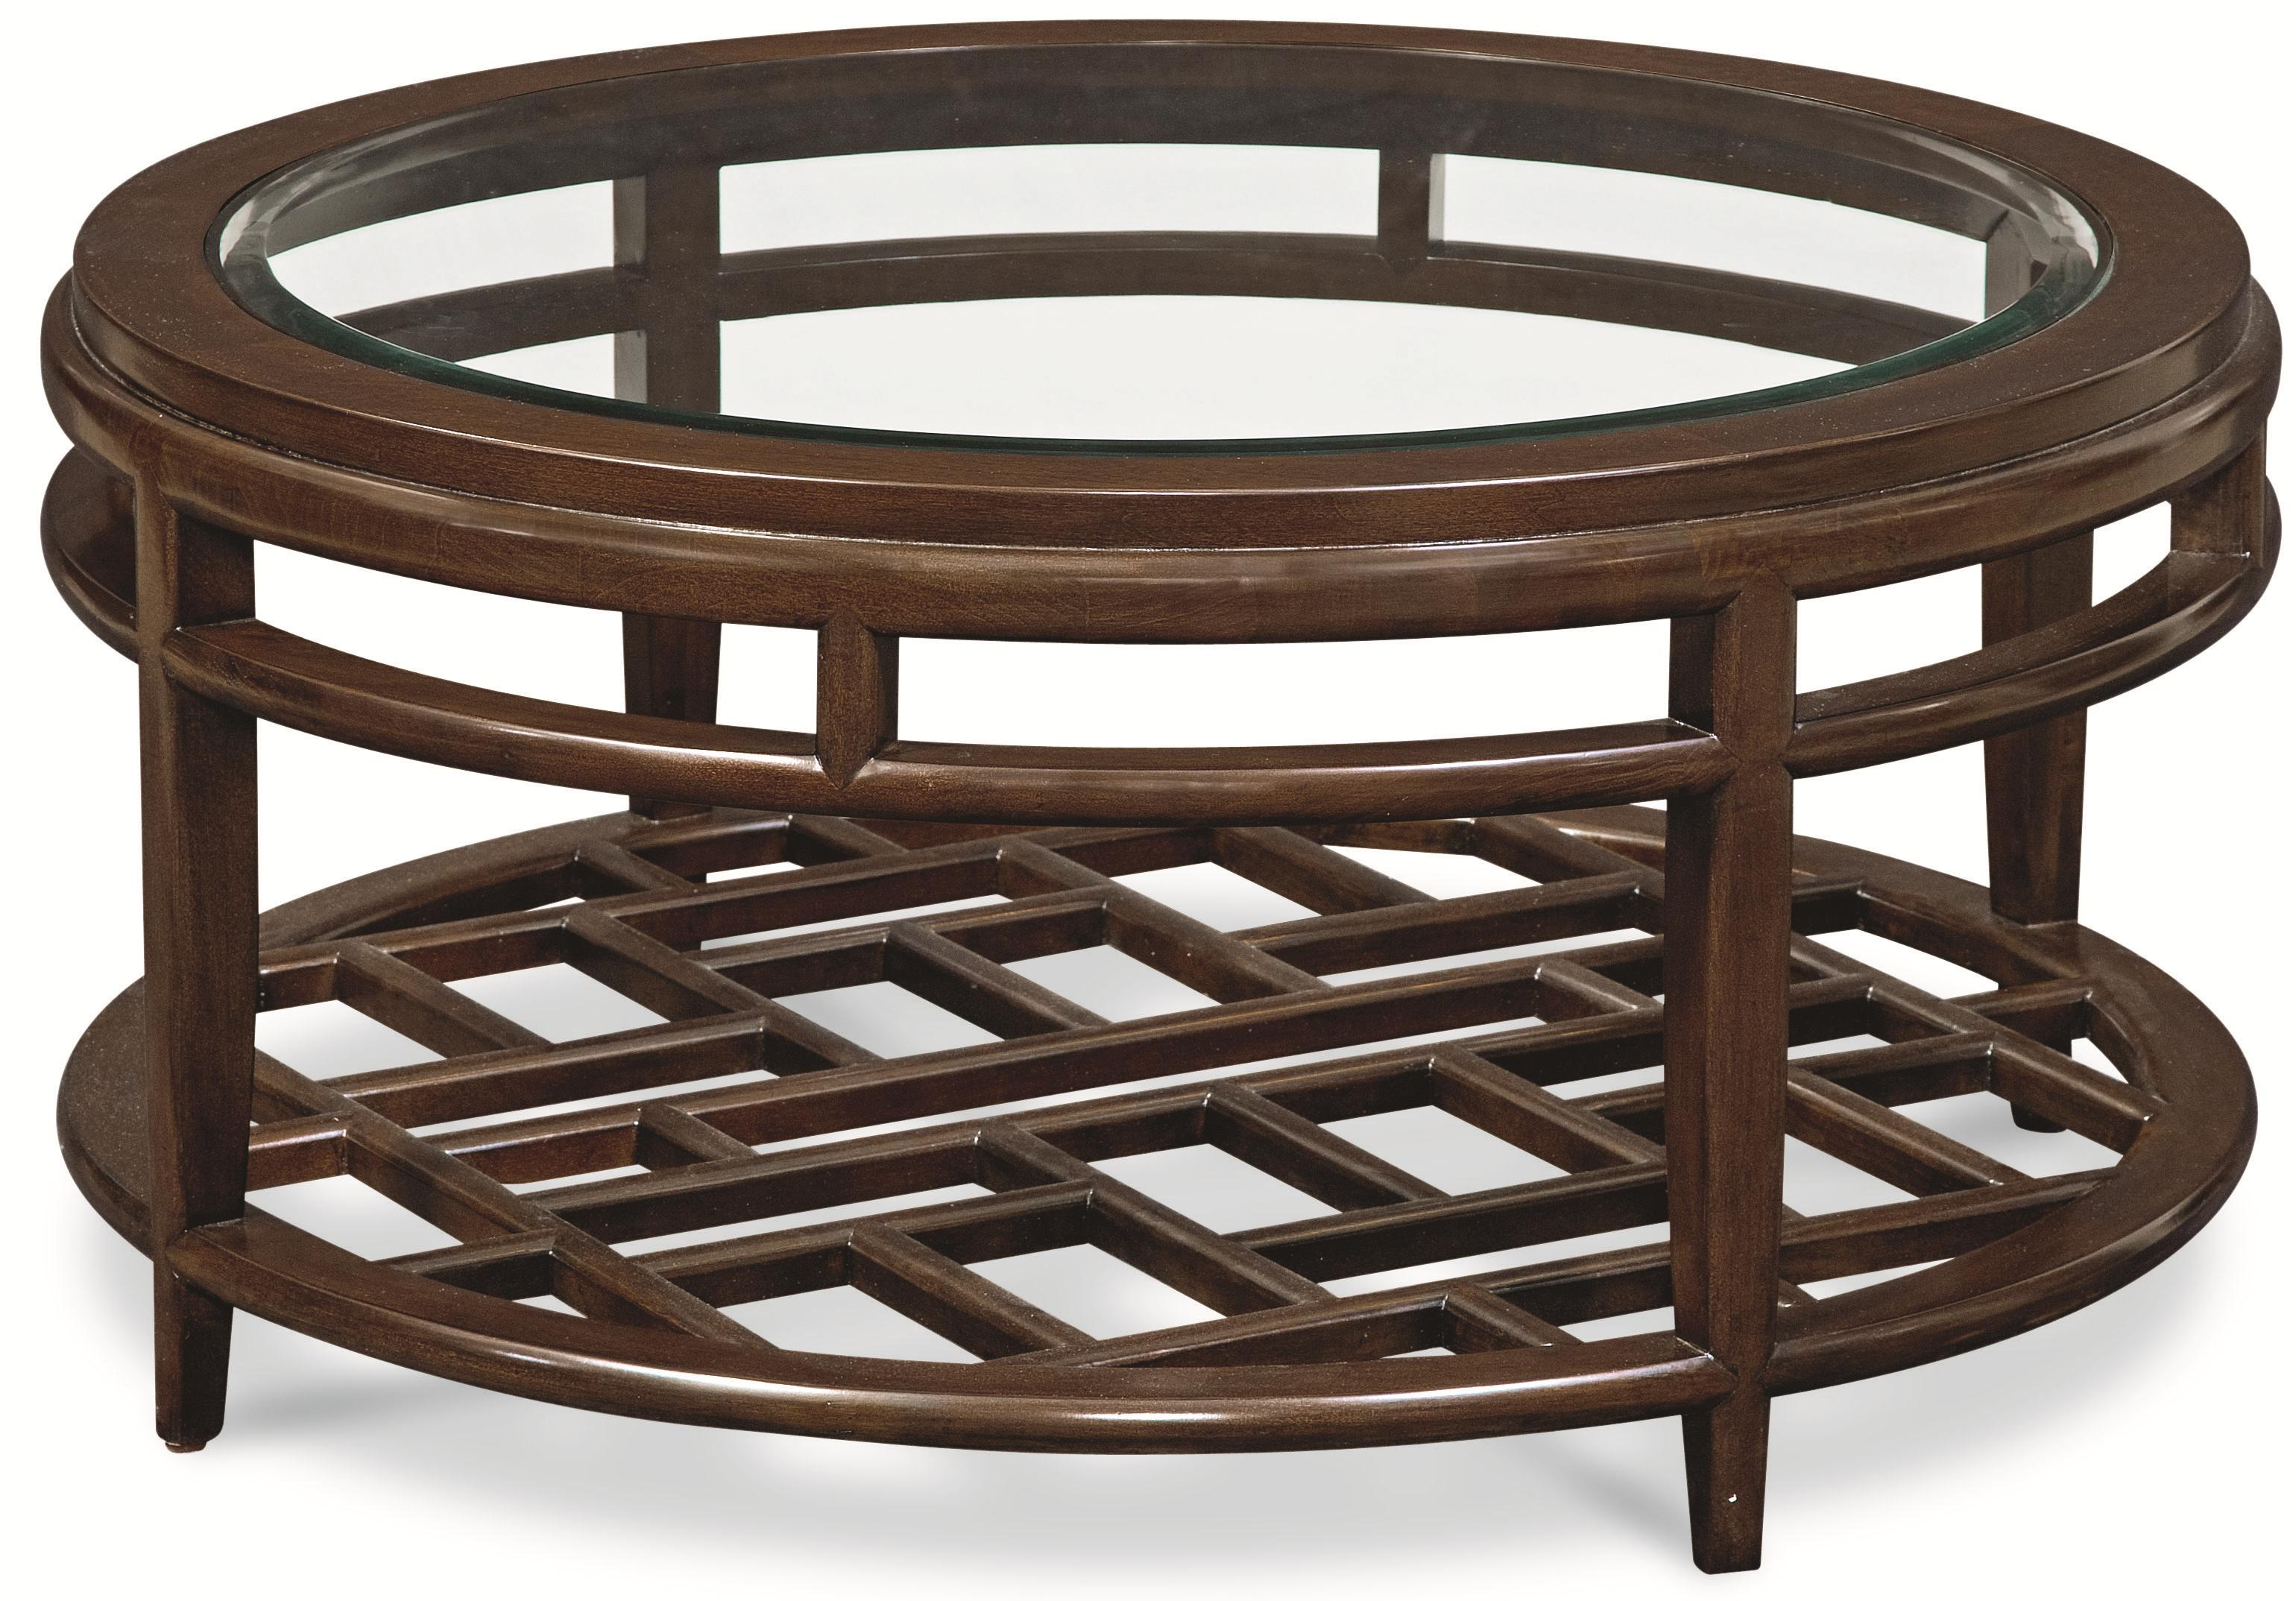 Thomasville® Lantau Round Cocktail Table   Item Number: 82631 171